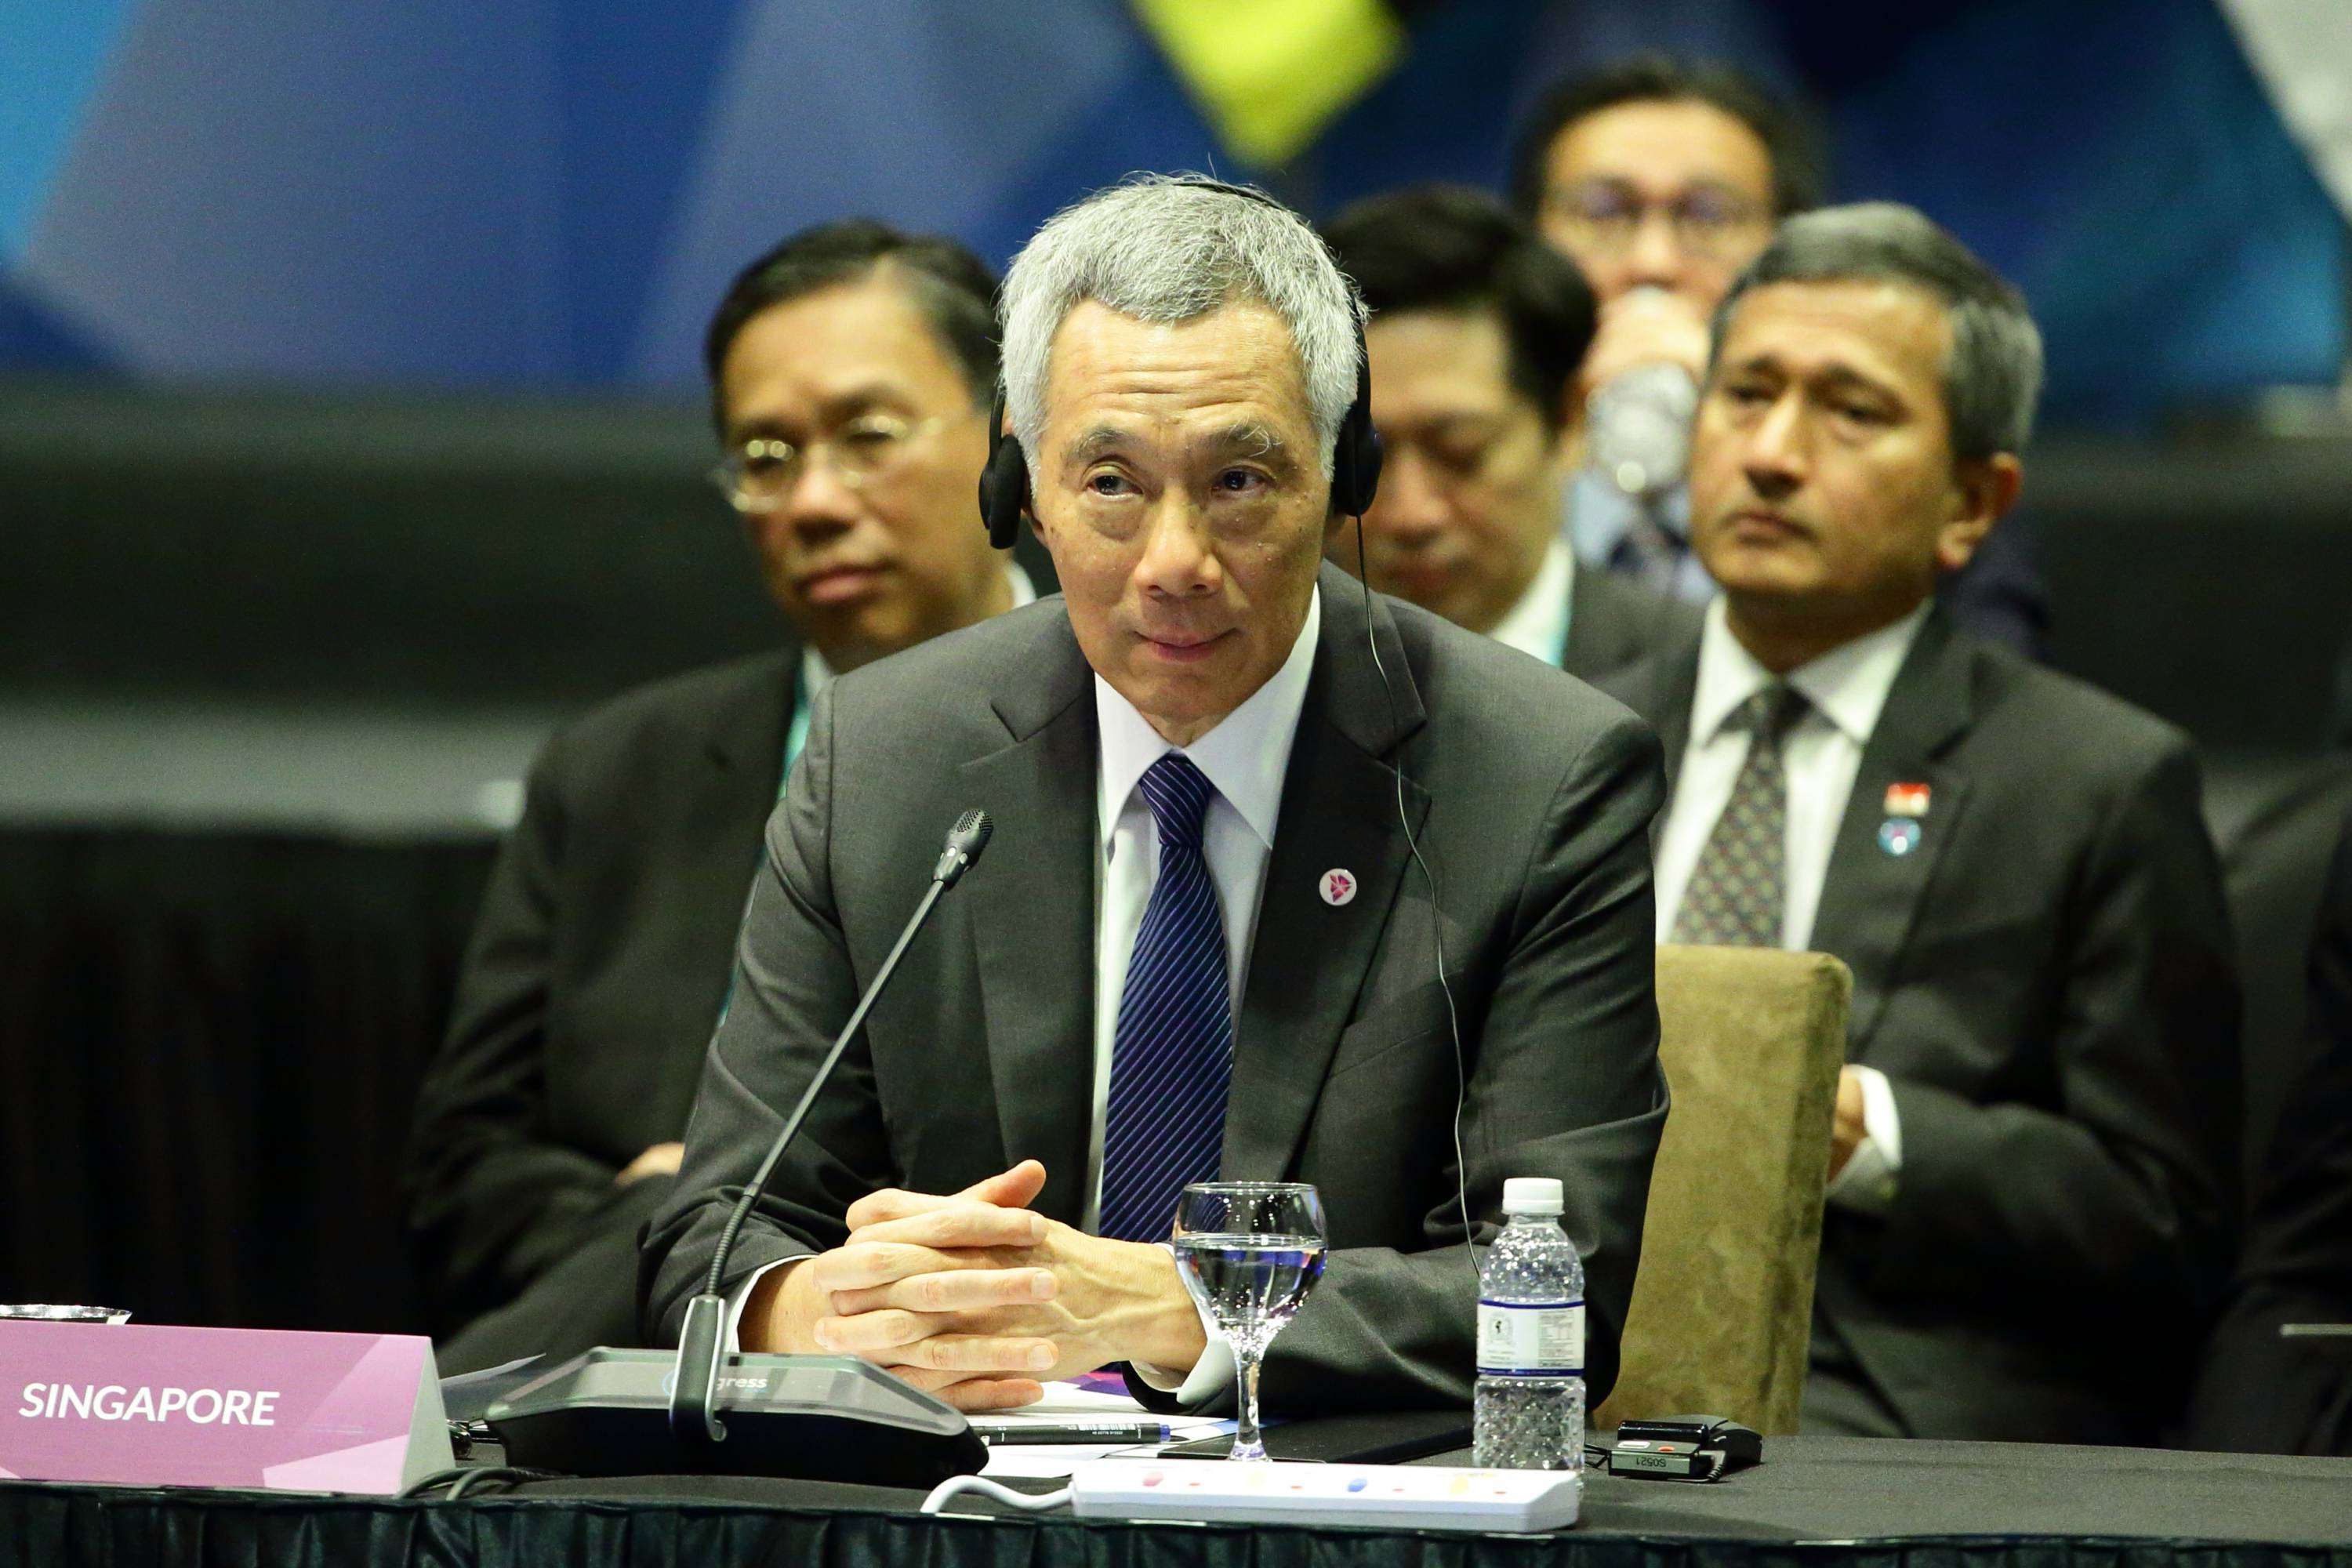 33rd Asean Summit - Day Two